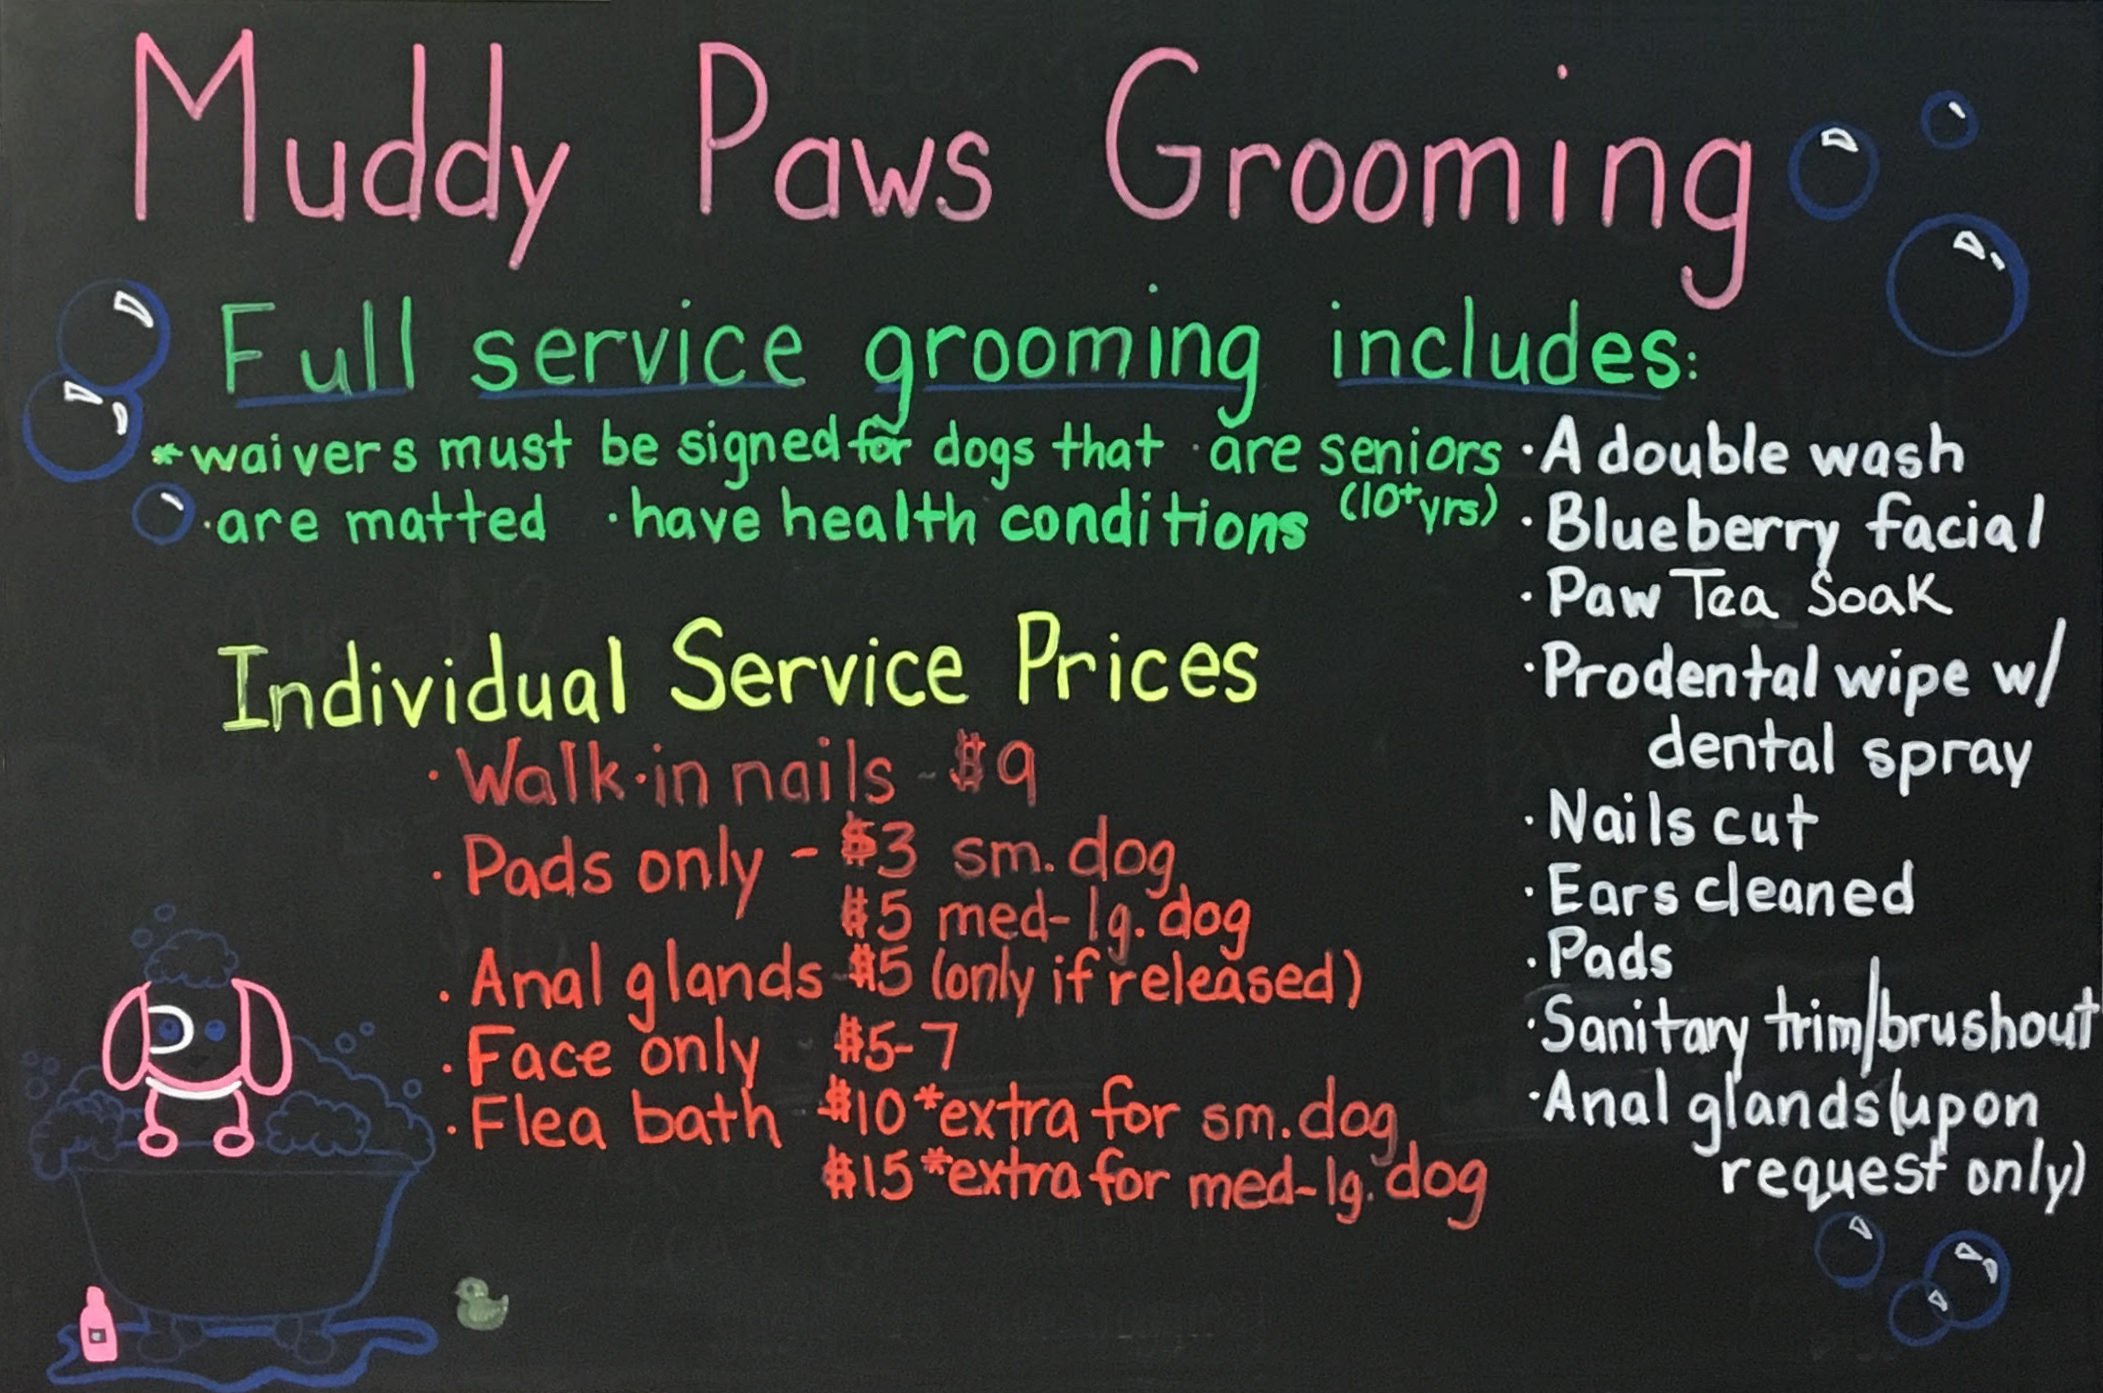 Muddy paws dog wash and grooming looking for grooming services we can take care of everything in the same visit sorry there is no option for self serve grooming solutioingenieria Gallery